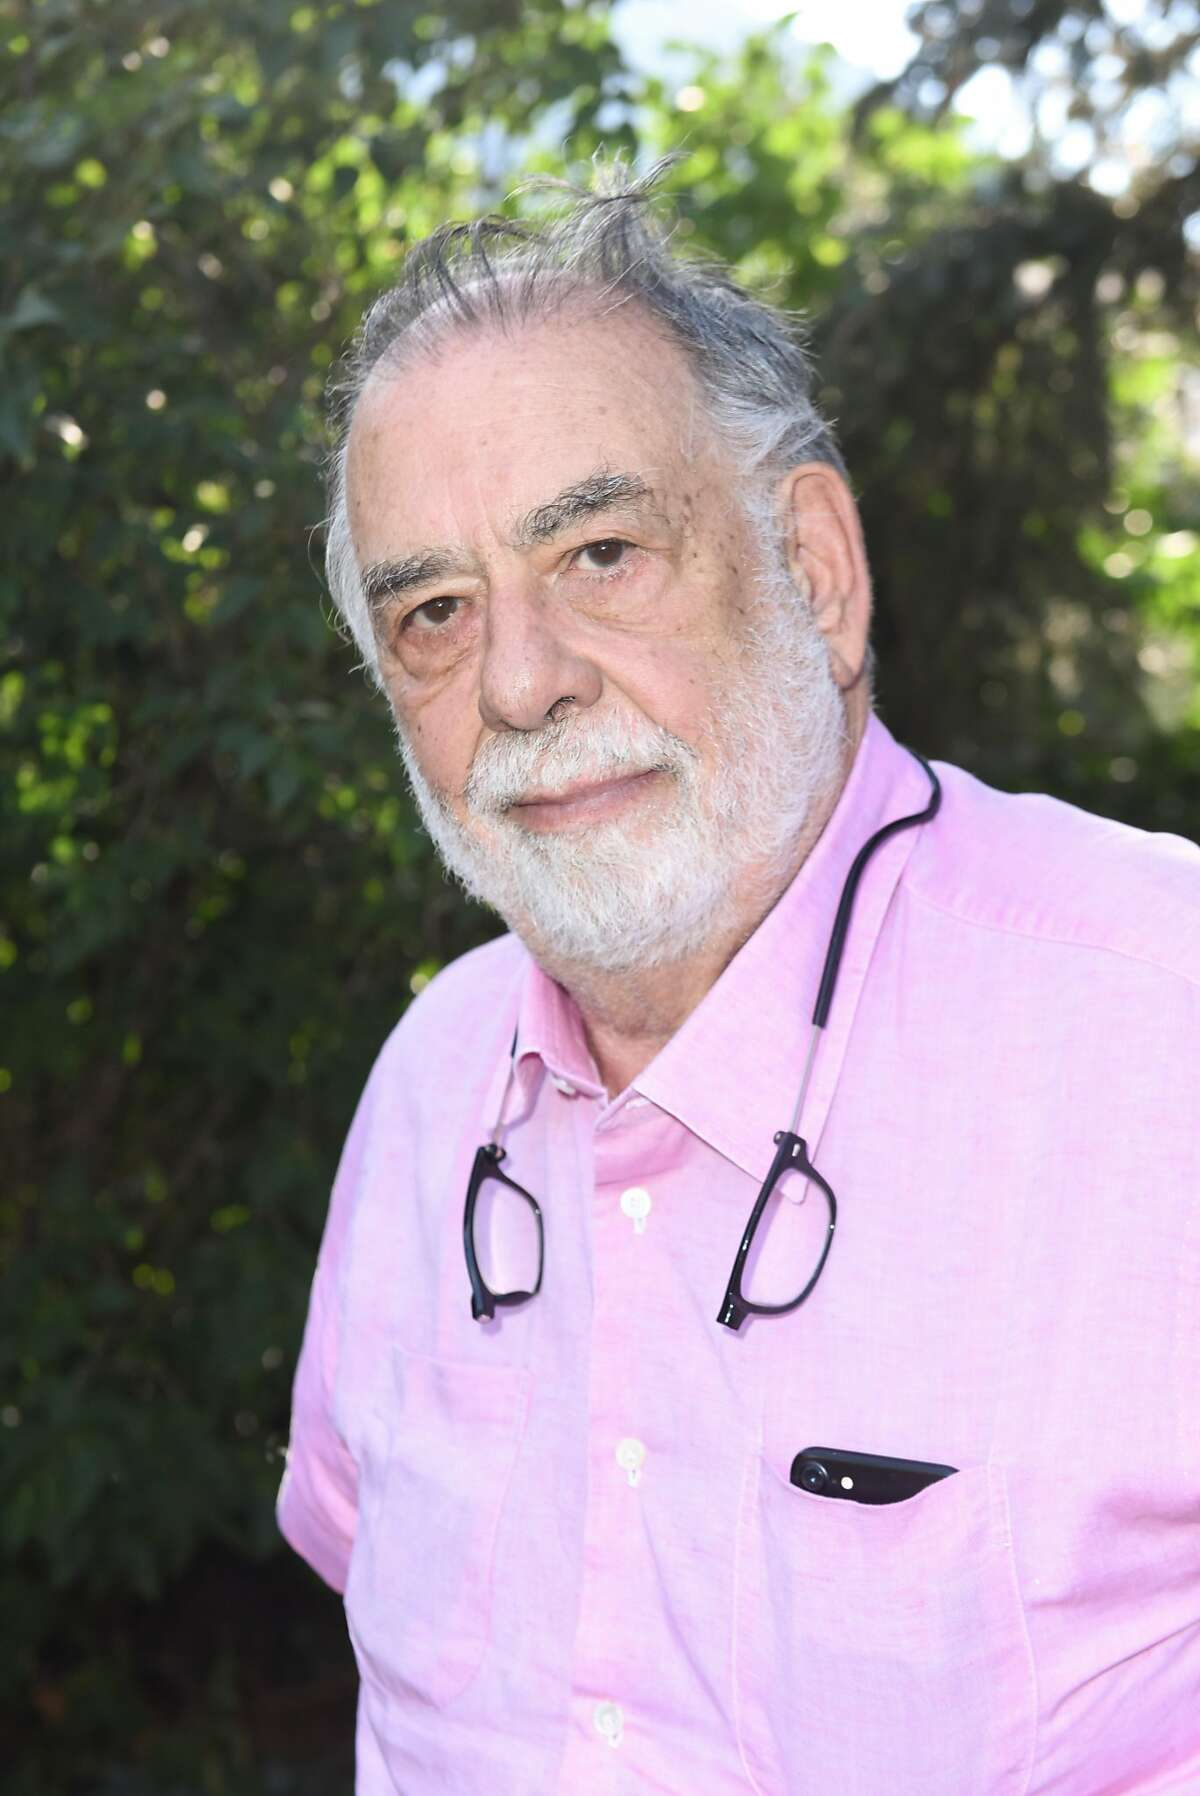 Francis Ford Coppola, author of